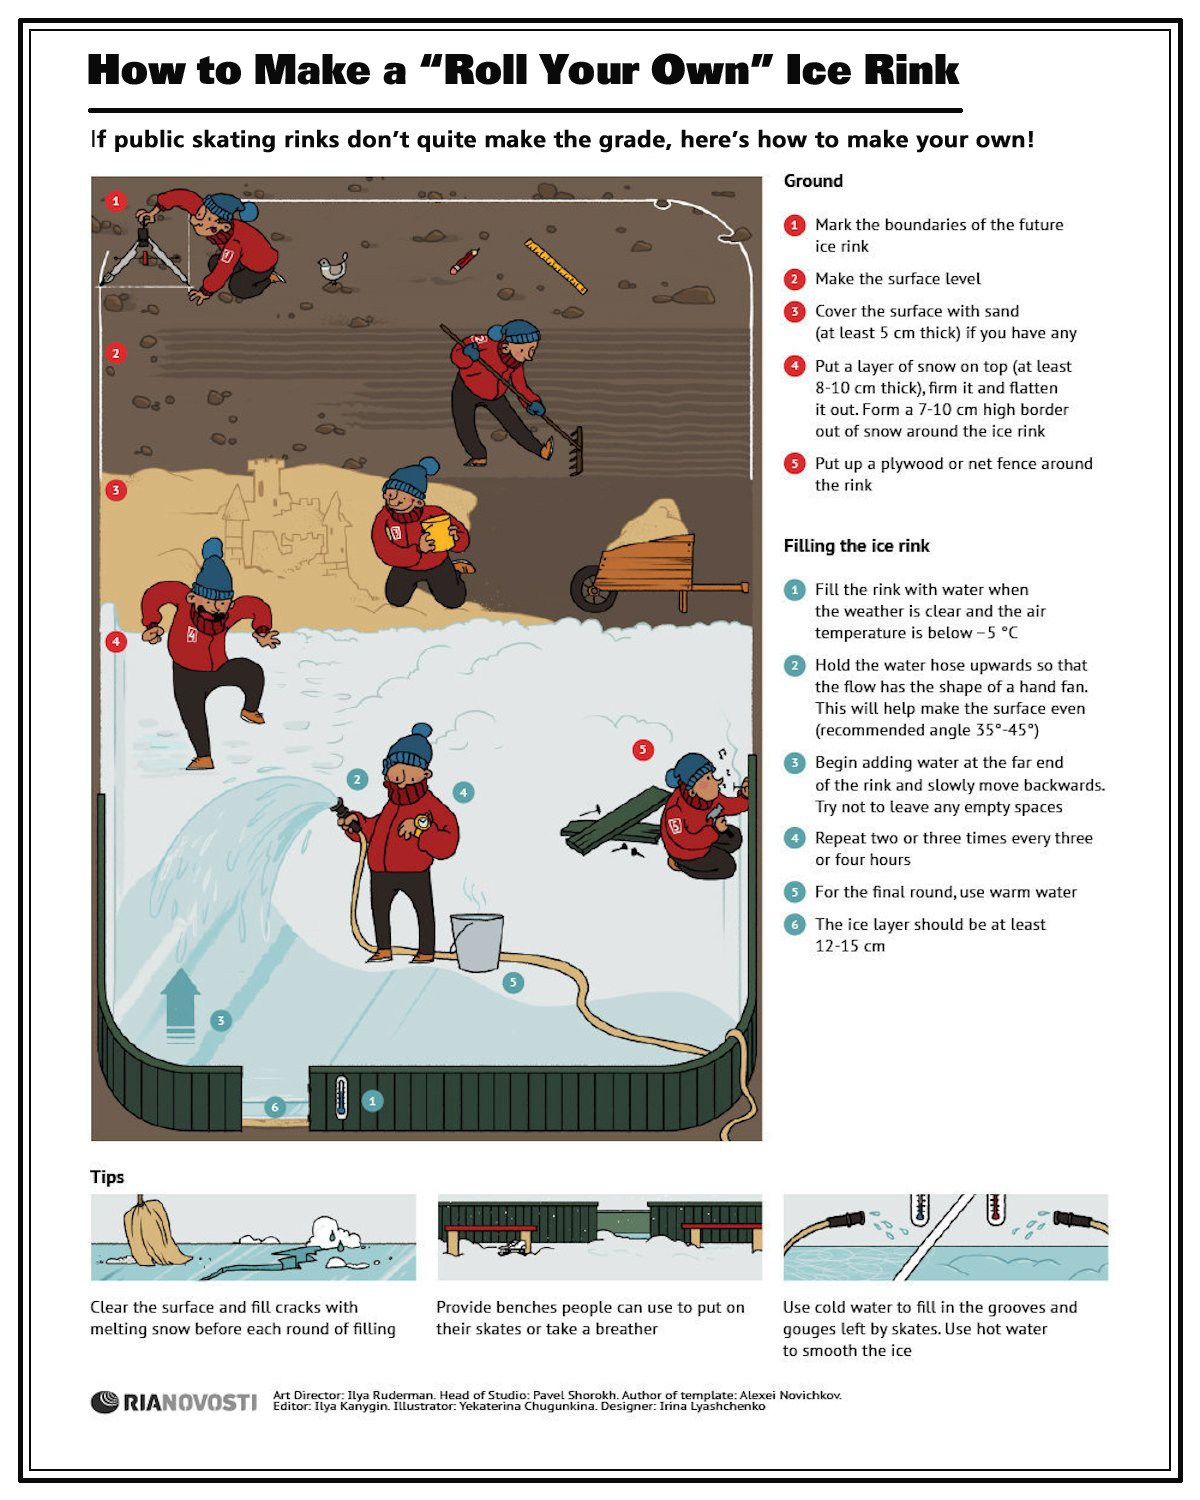 00-ria-novosti-infographics-how-to-make-a-e2809croll-your-owne2809d-ice-rink-2012